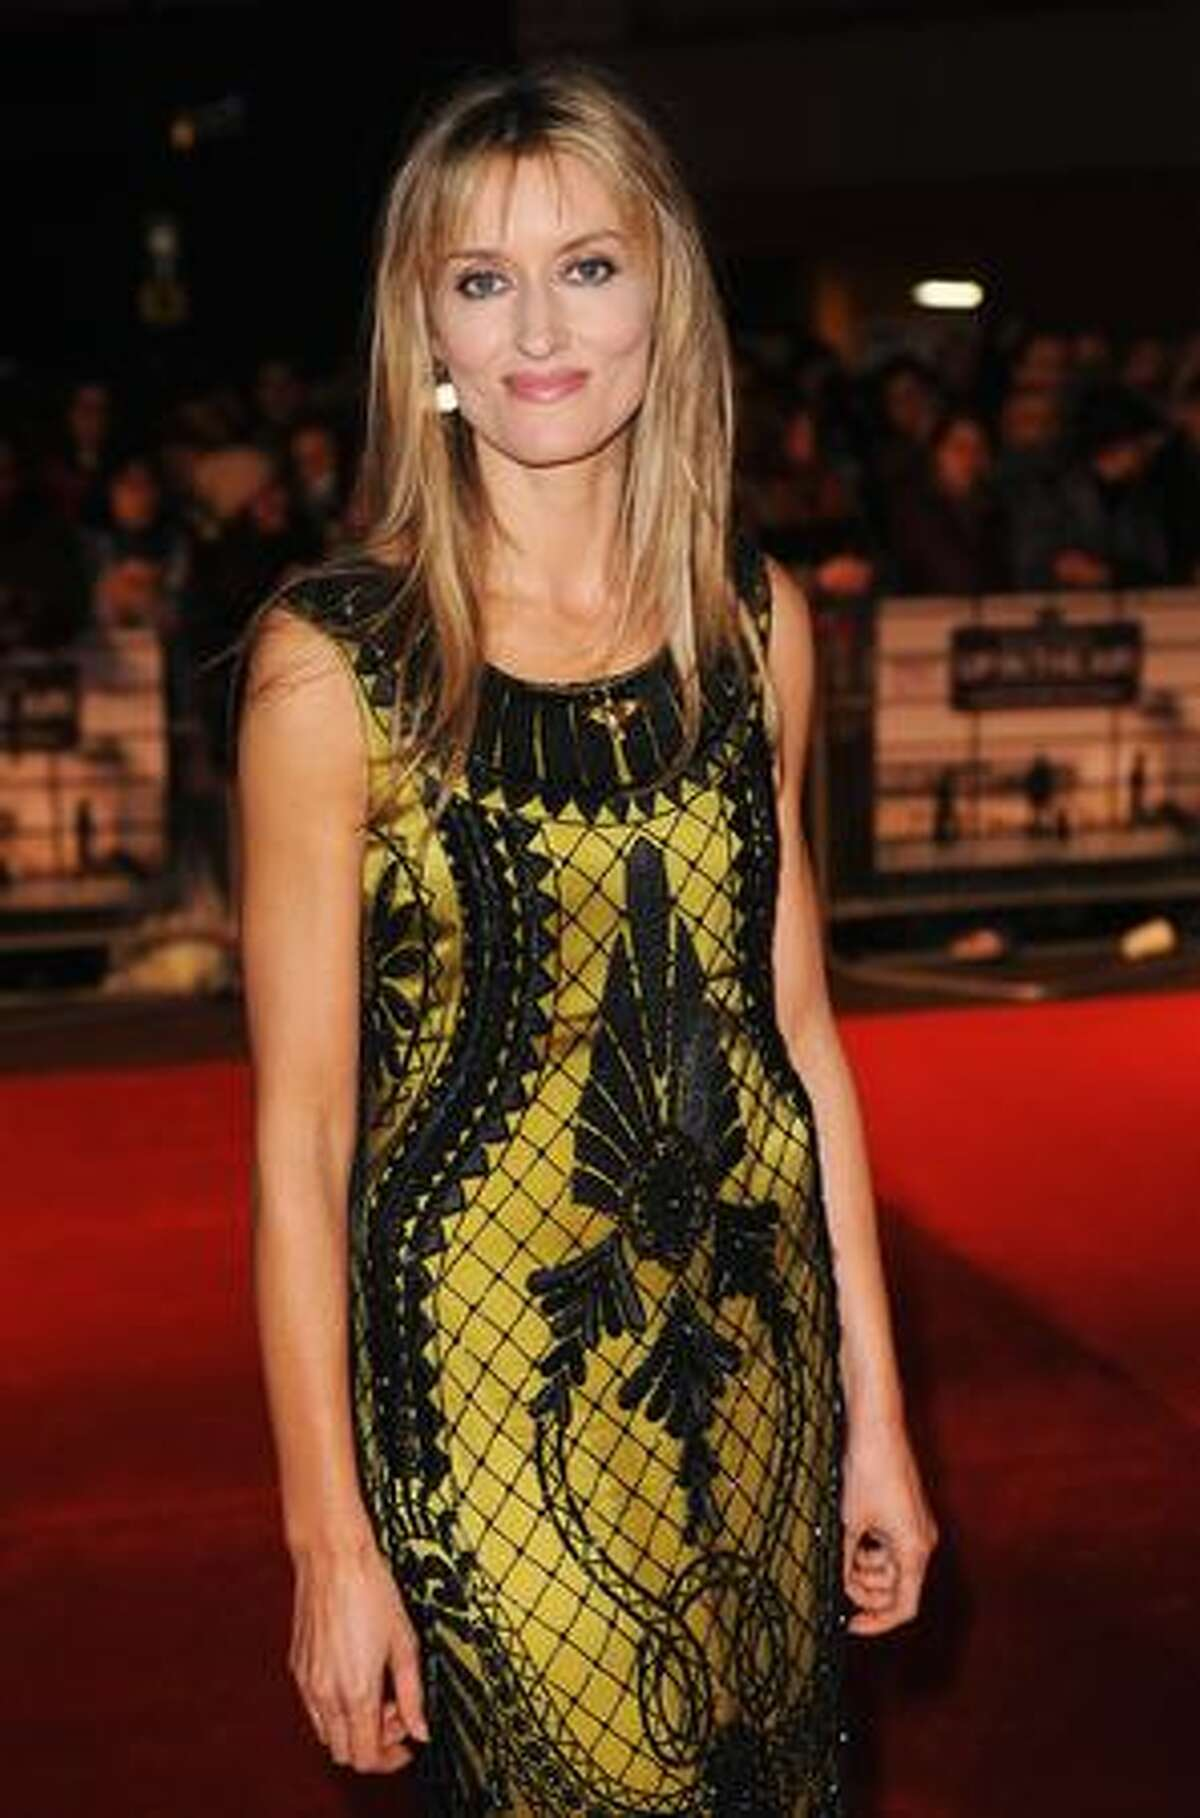 Actress Natascha McElhone arrives for the premiere of 'Up In The Air' during the Times BFI 53rd London Film Festival at the Vue West End in London, England.